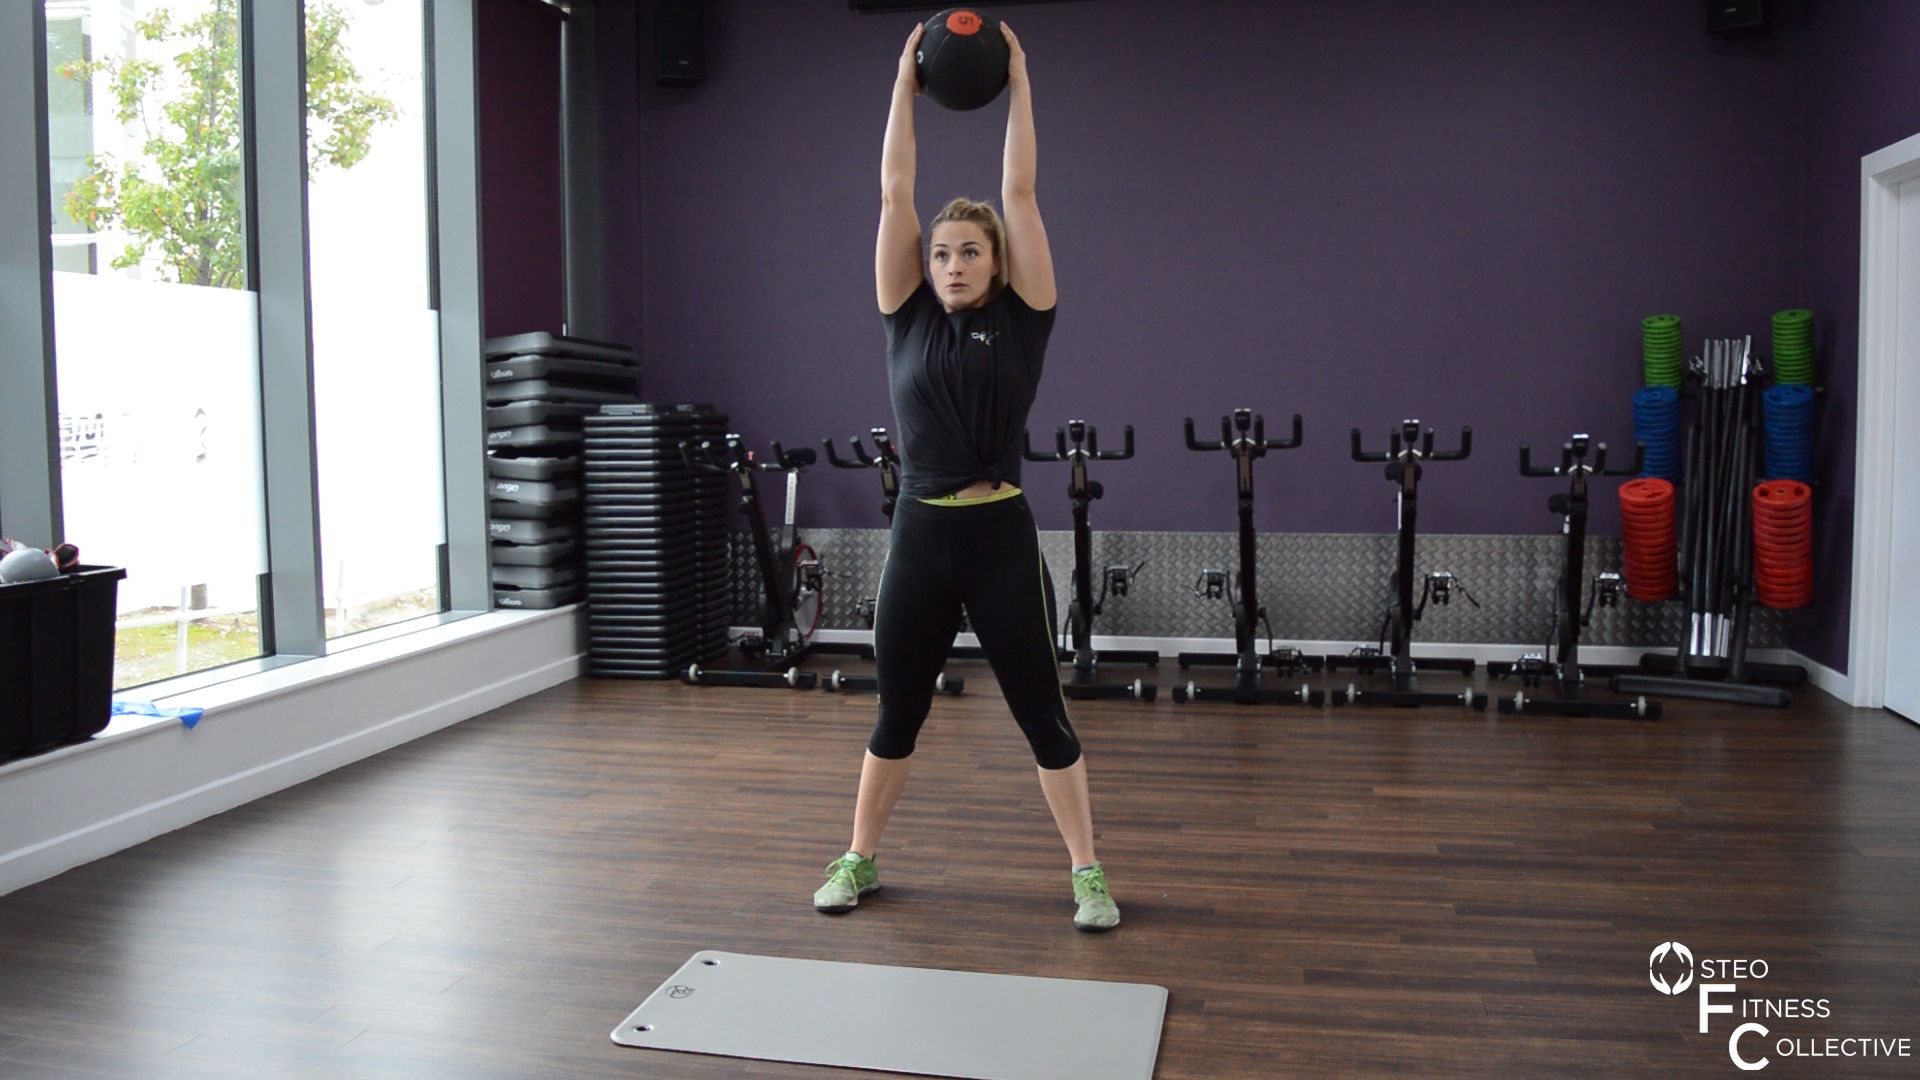 Medicine ball workout, squat and press